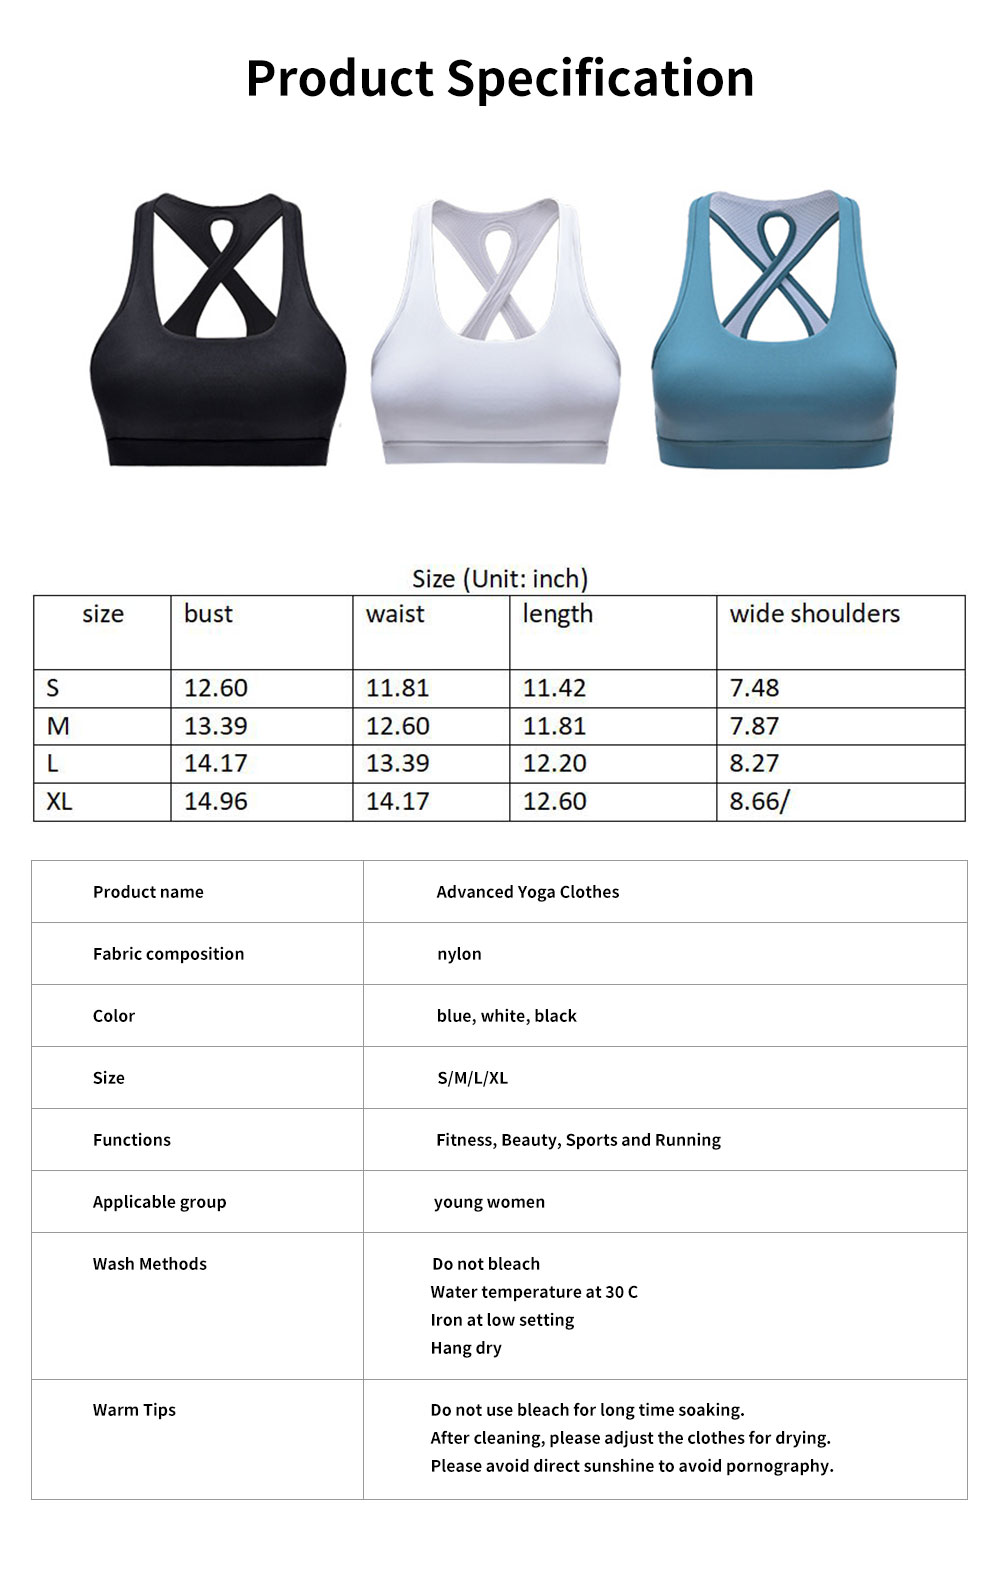 Advanced Yoga Clothes Ladies'Beauty Back Interlaced Underwear, Closed Vest Type Shock-proof Running Bra 6